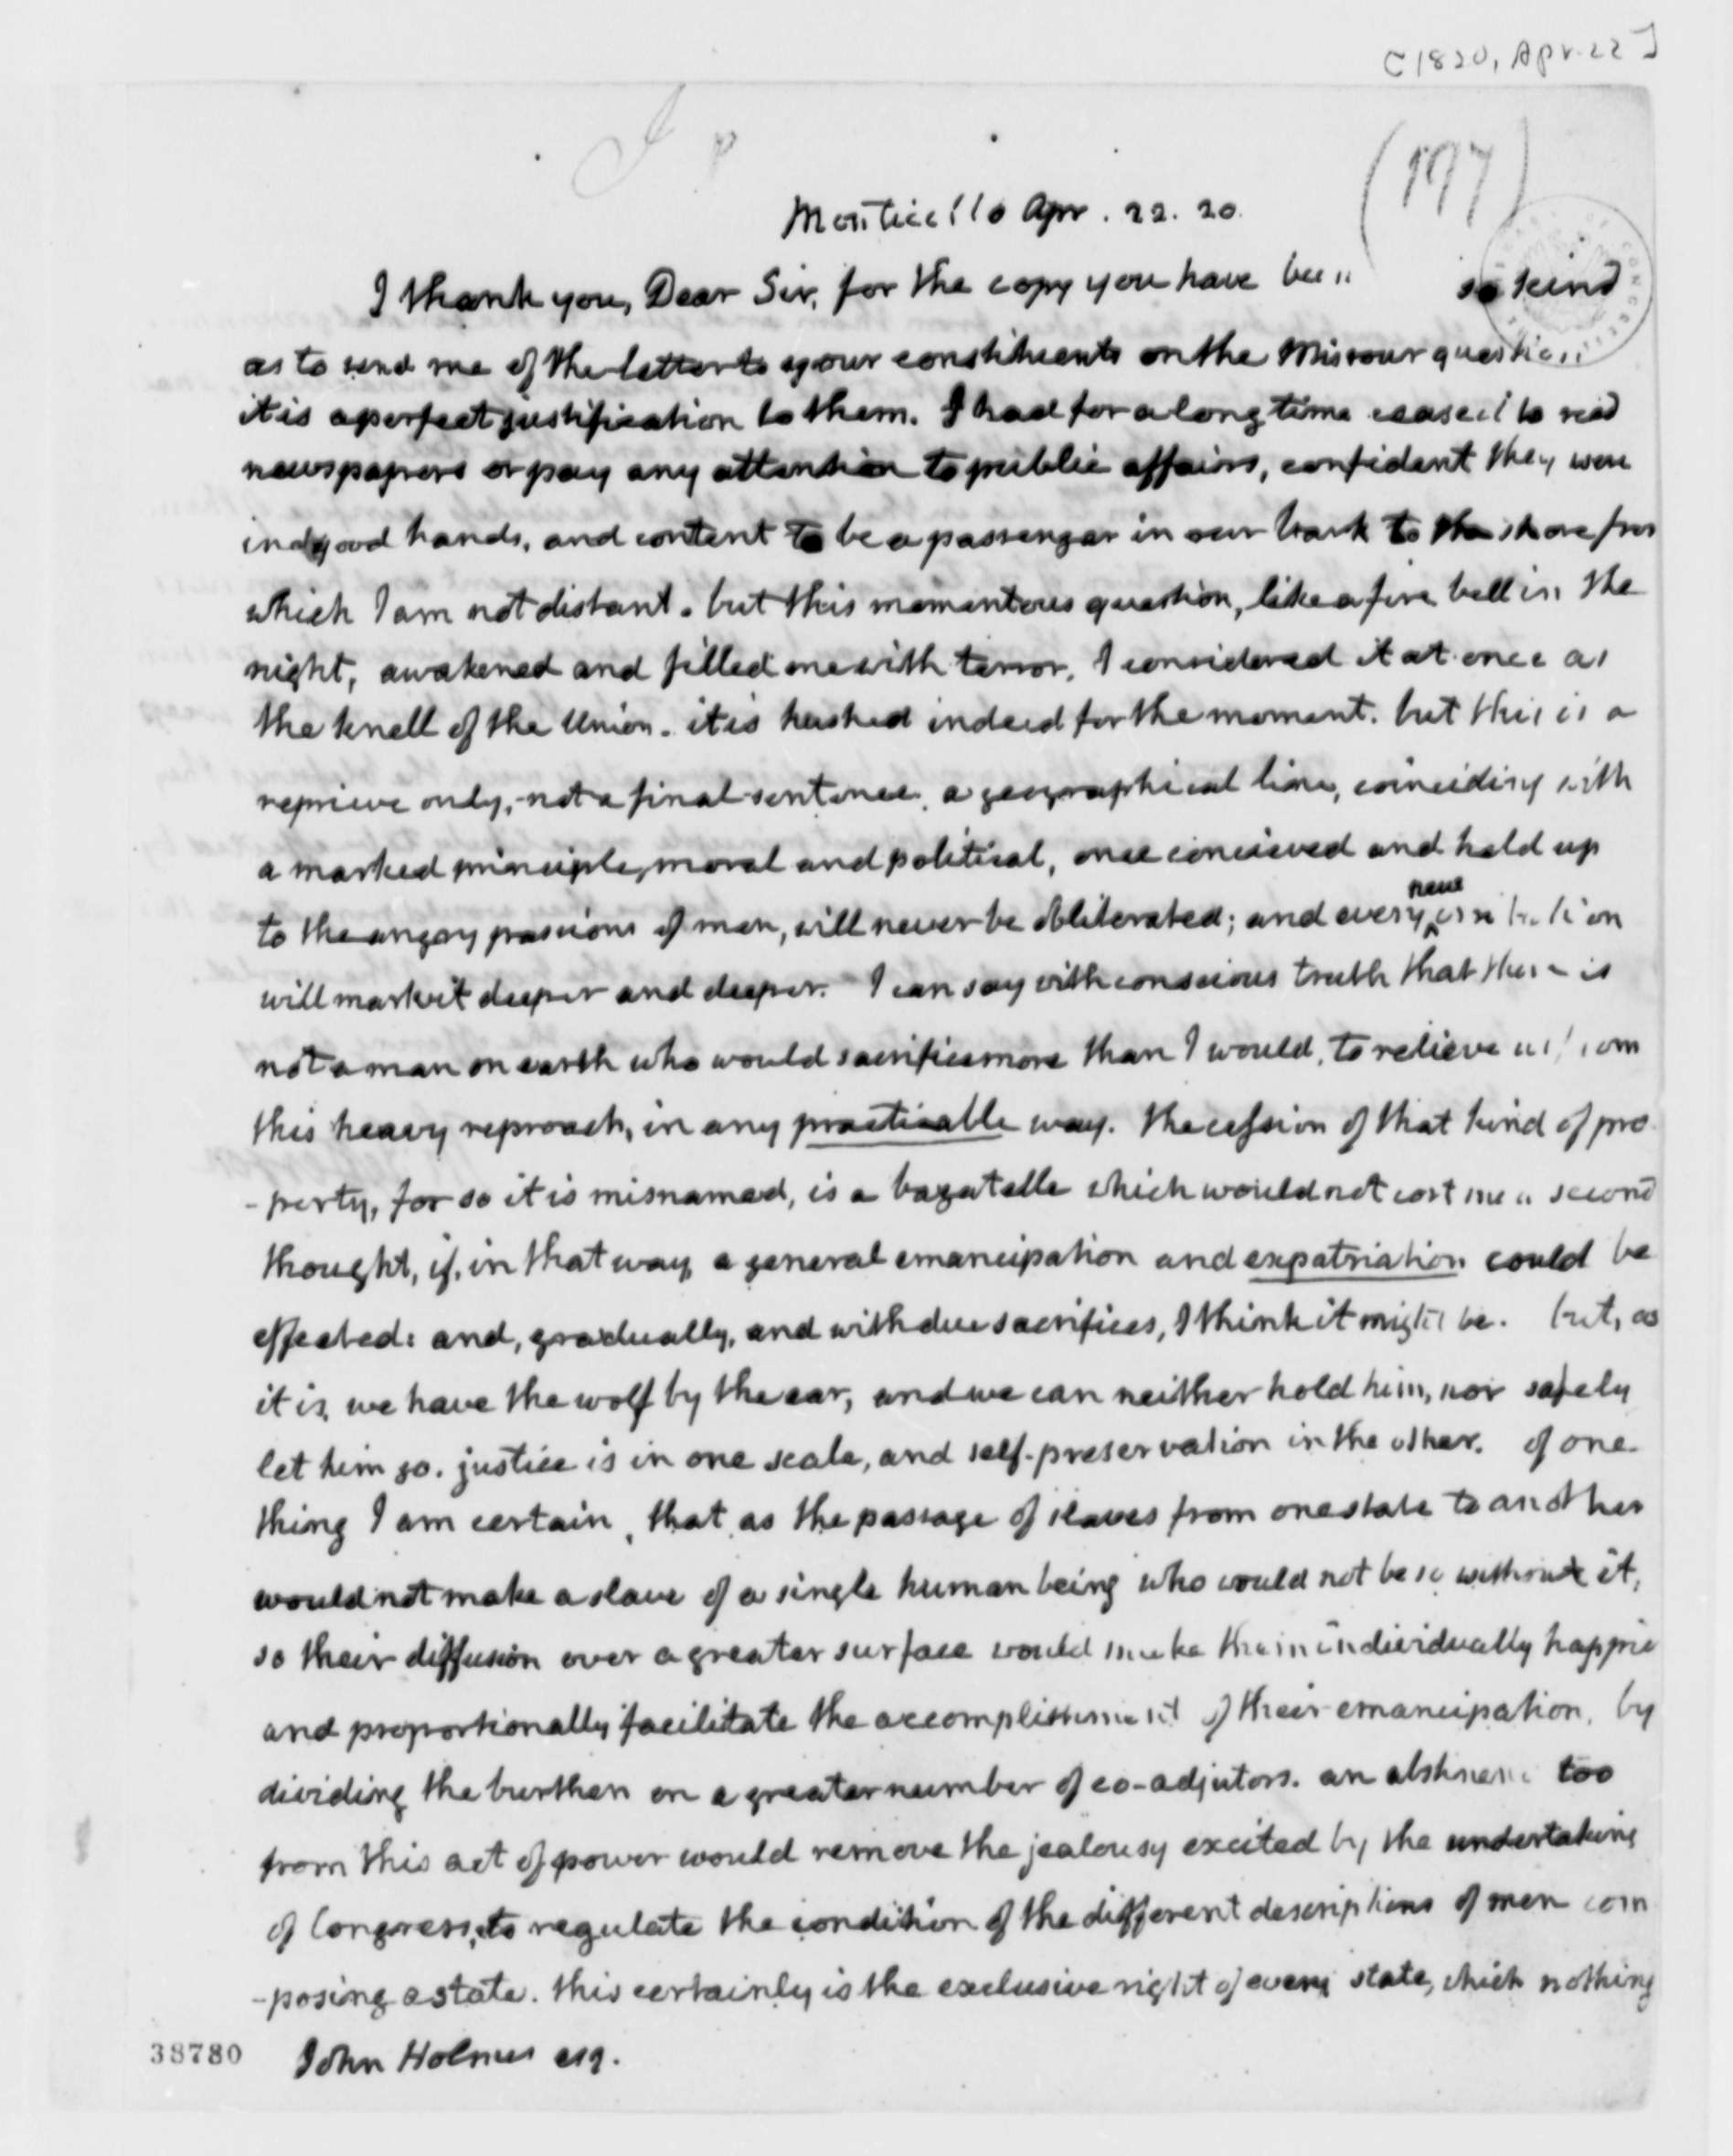 003 Thomas Jefferson Essay Example Magnificent On Education Questions Outline Full